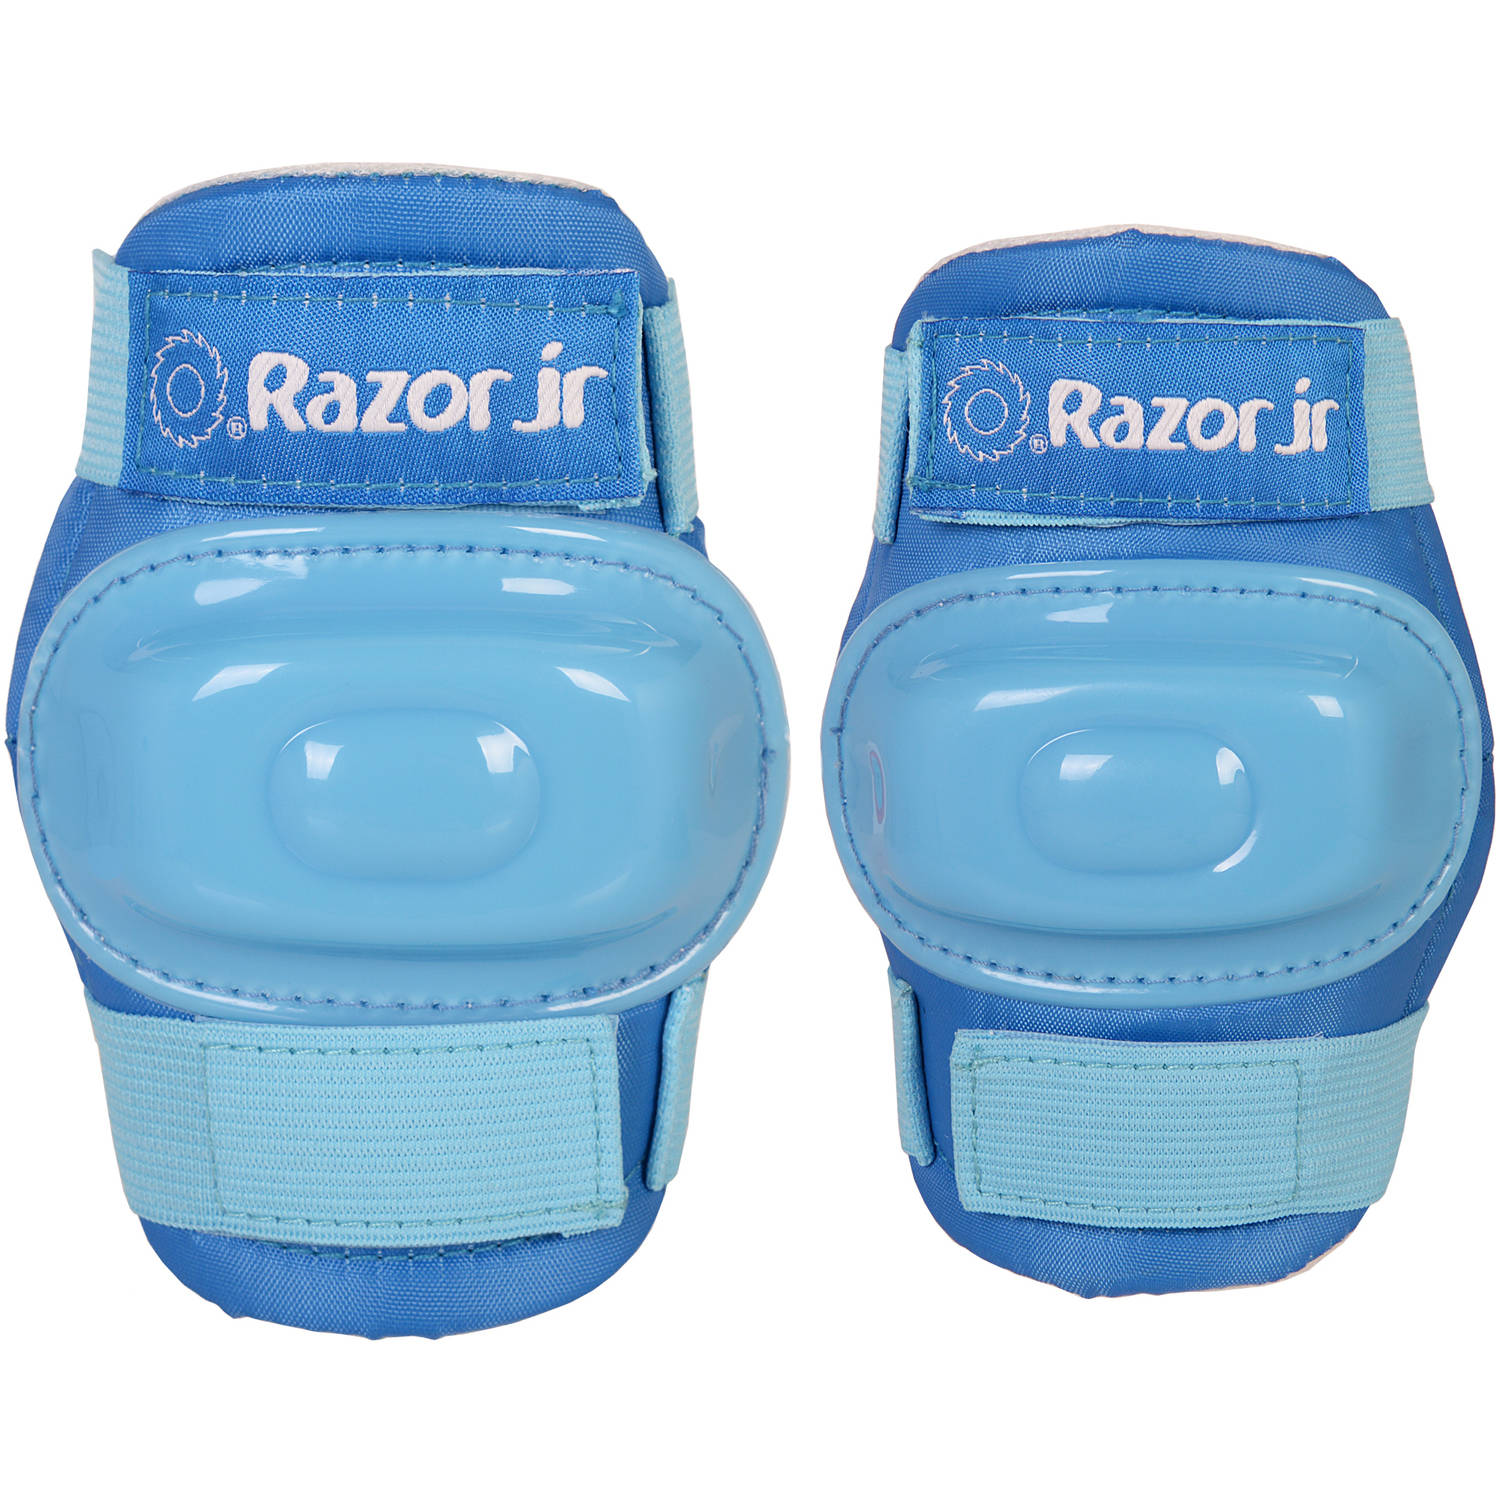 Razor Jr. Pad Set, Blue